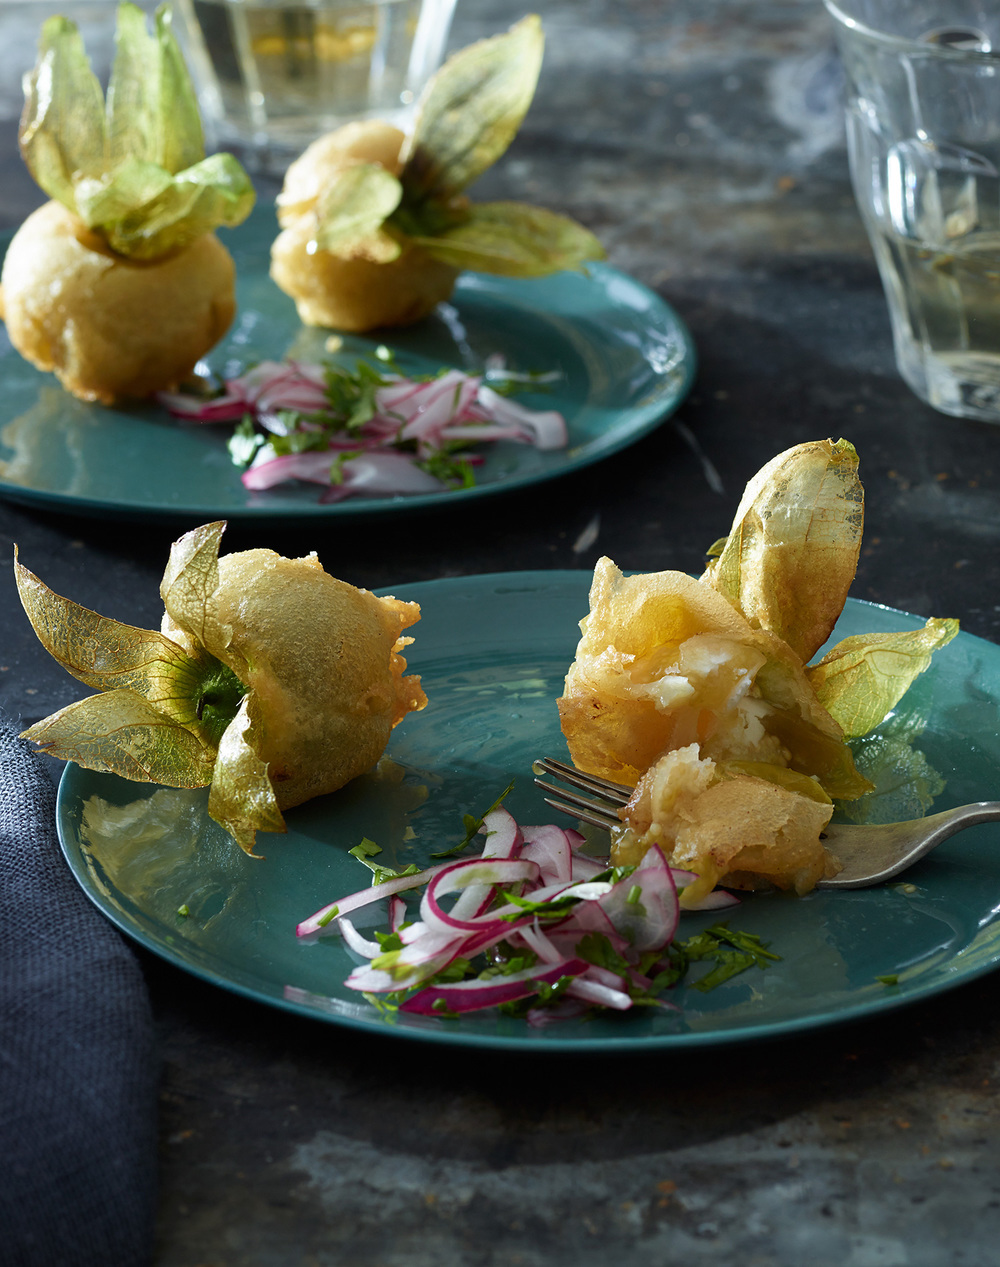 fried tomatillos with onion herb salad vinegar on a plate